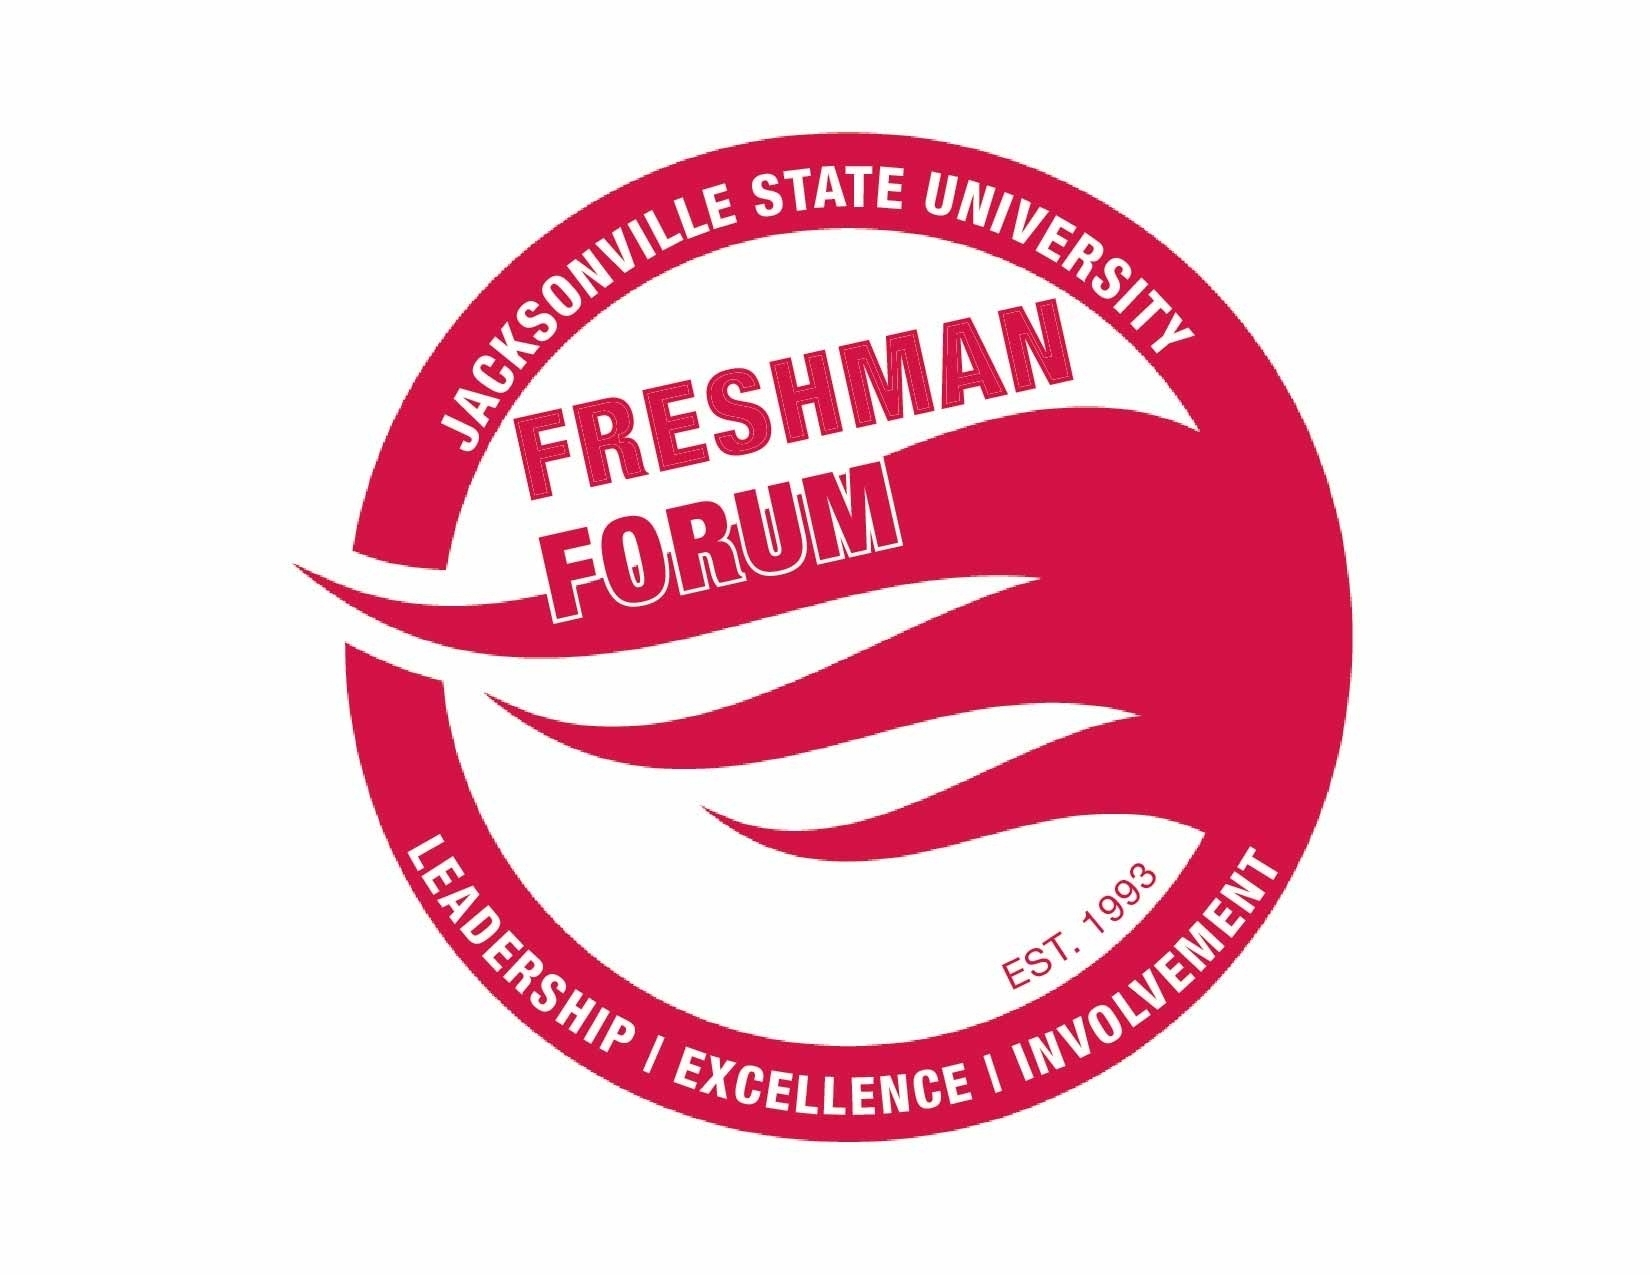 Freshman forum logo red